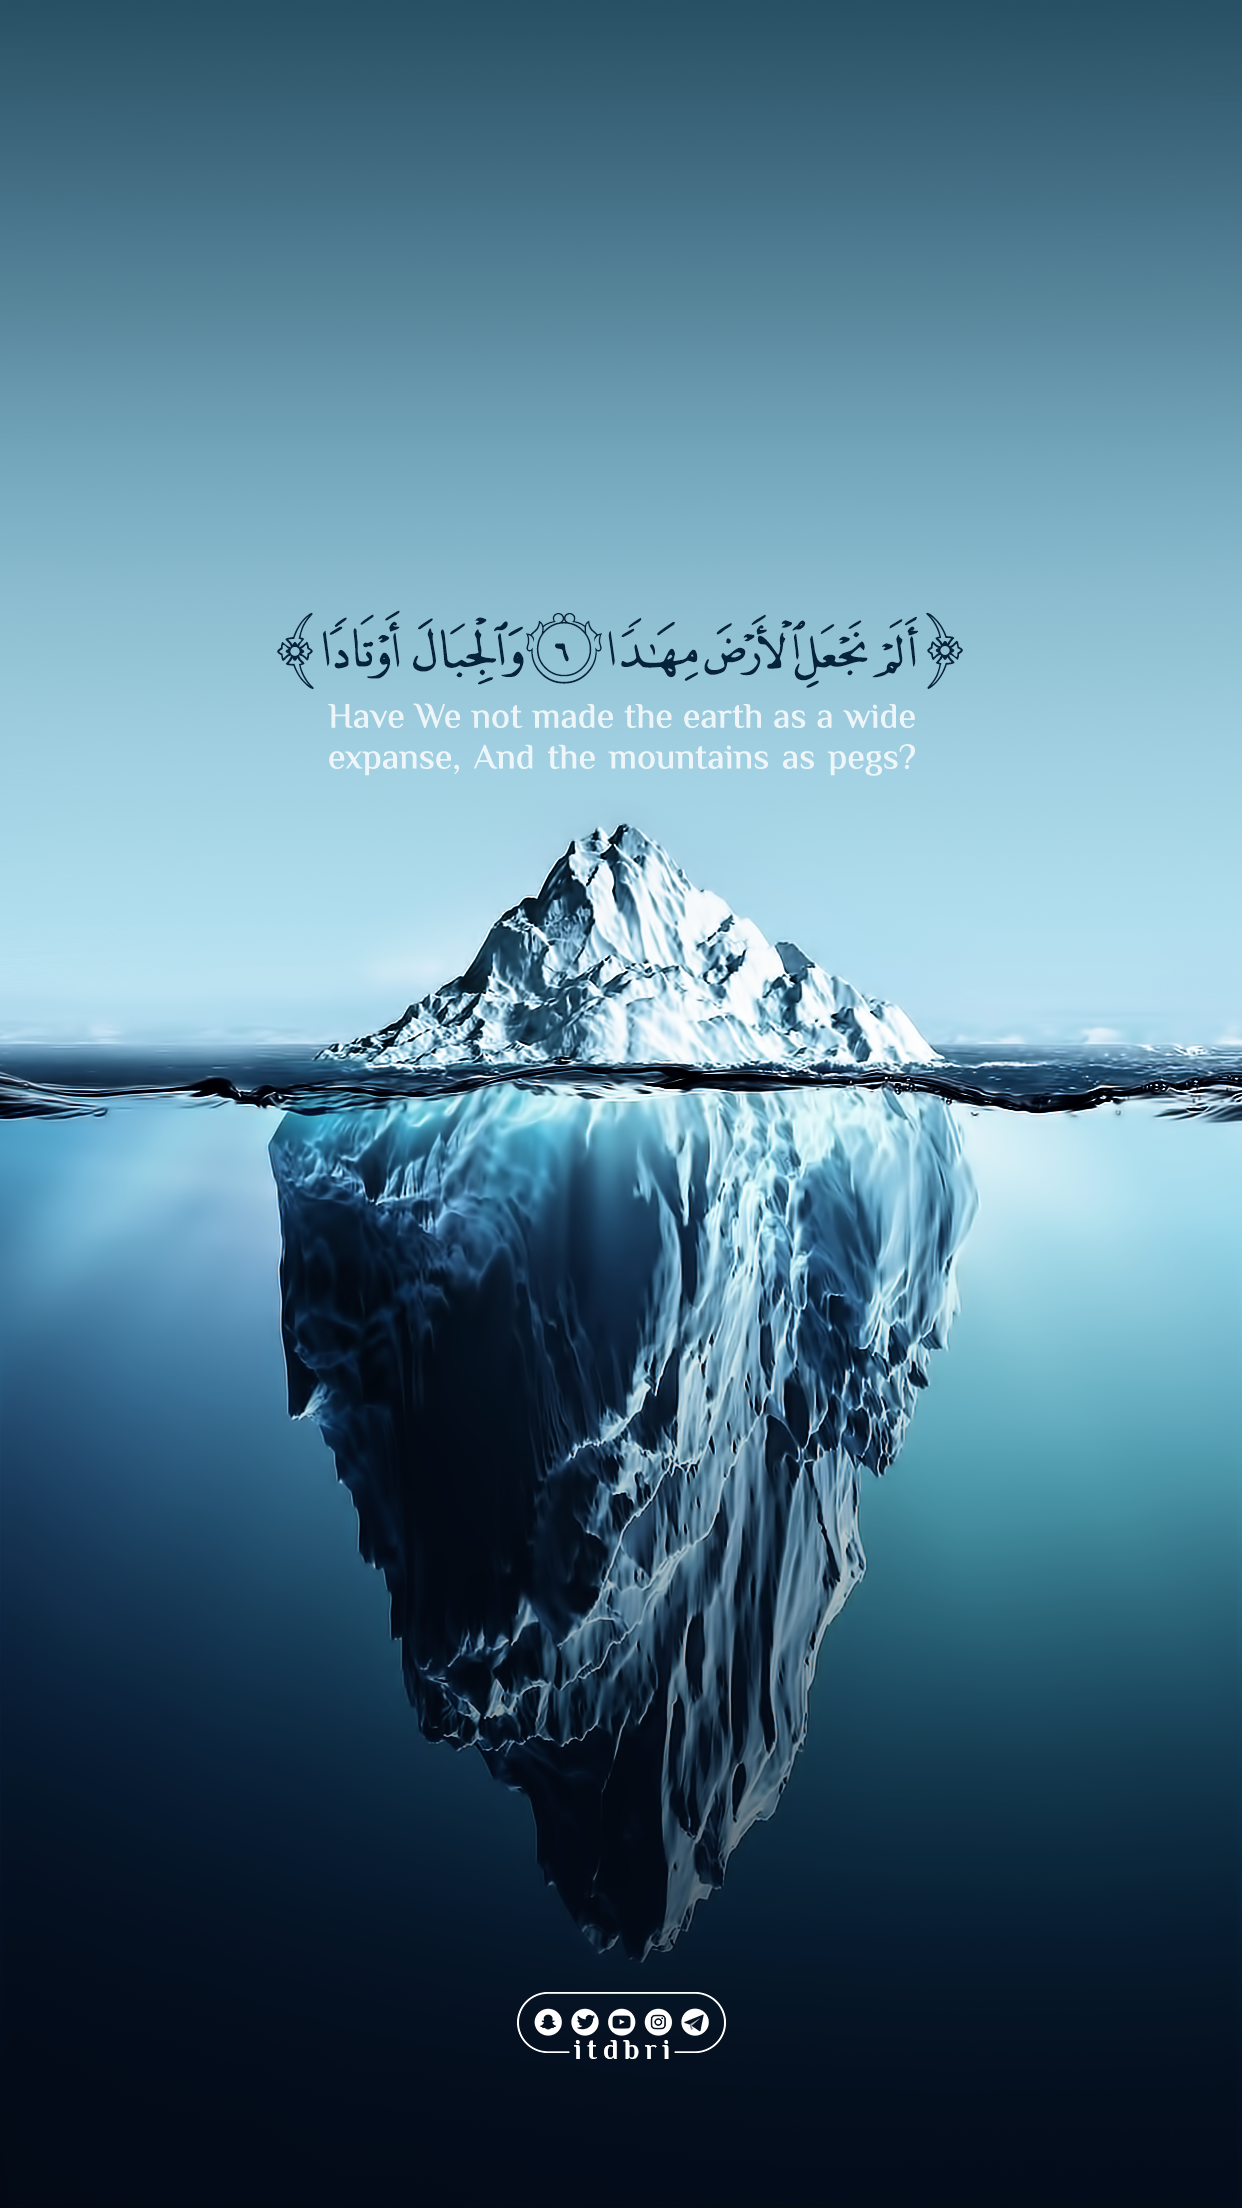 Pin By Danish Mukhrizz On Backgrounds Quran Quotes Beautiful Quran Quotes Quran Quotes Love